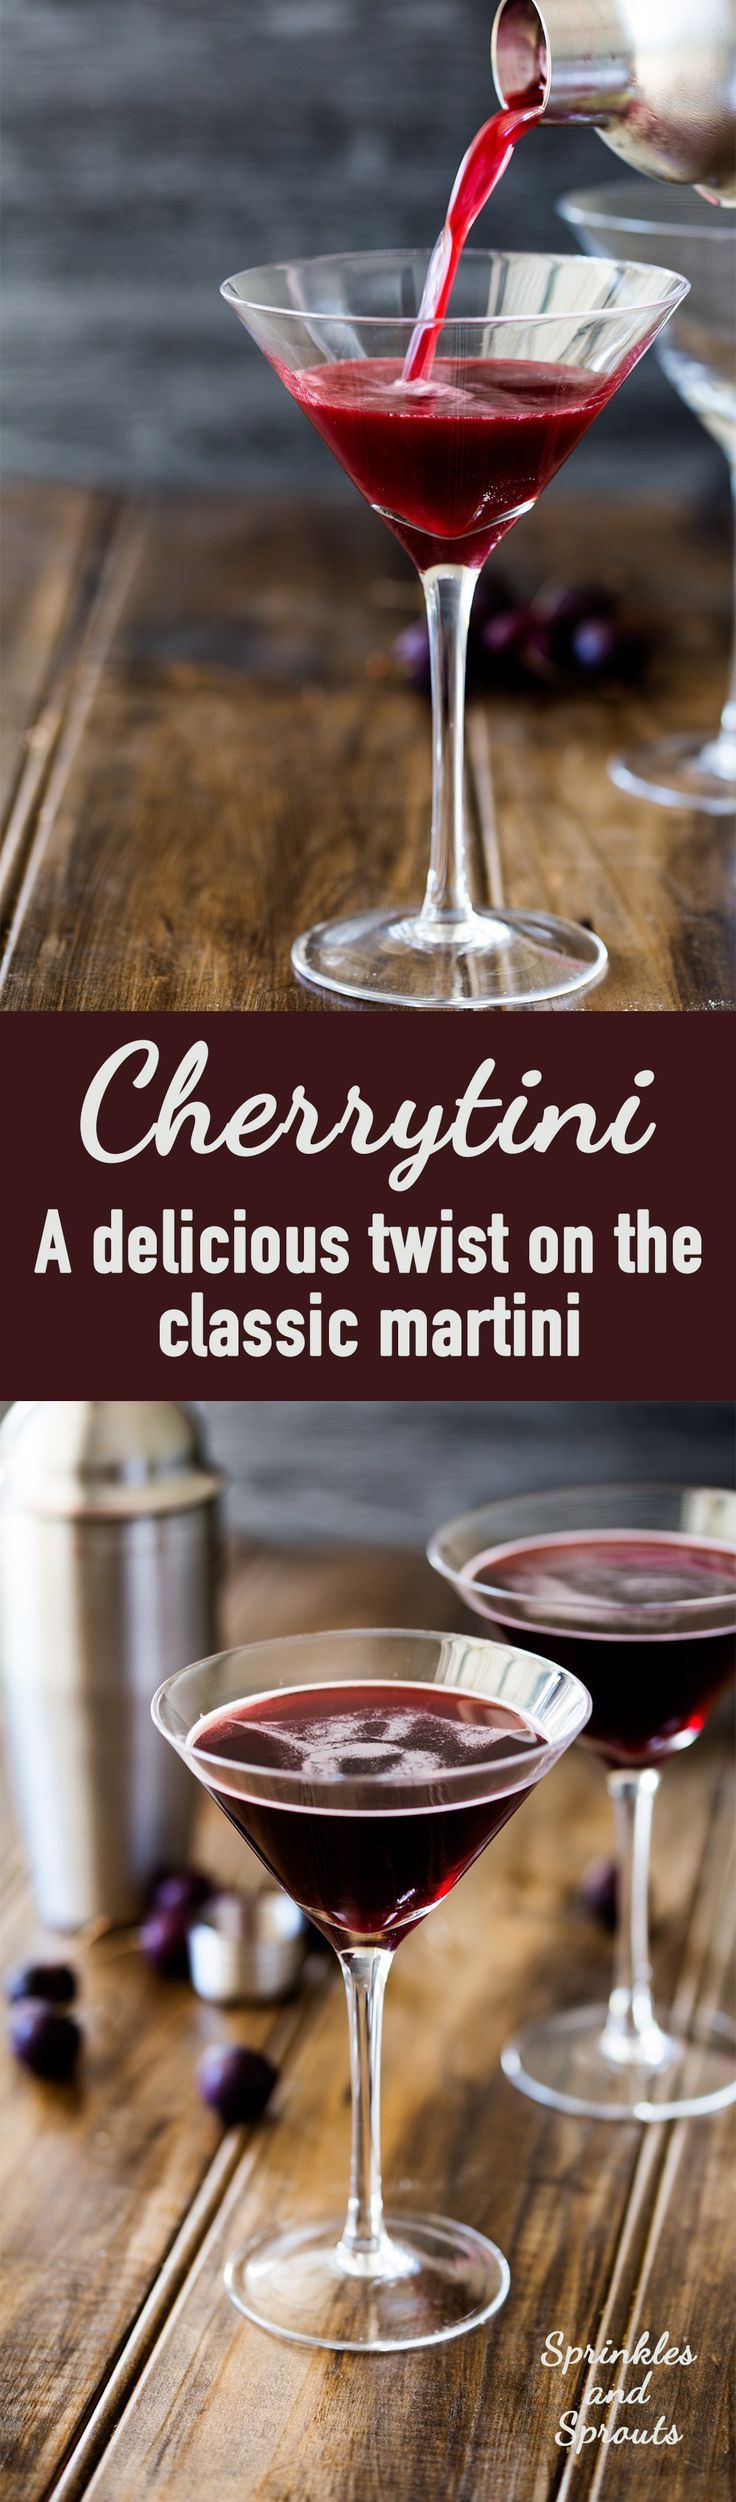 This cherrytini is the perfect fruity martini! It tastes like an adult version of cherry drop sweets. Packed with cherry flavour and pulling a great…